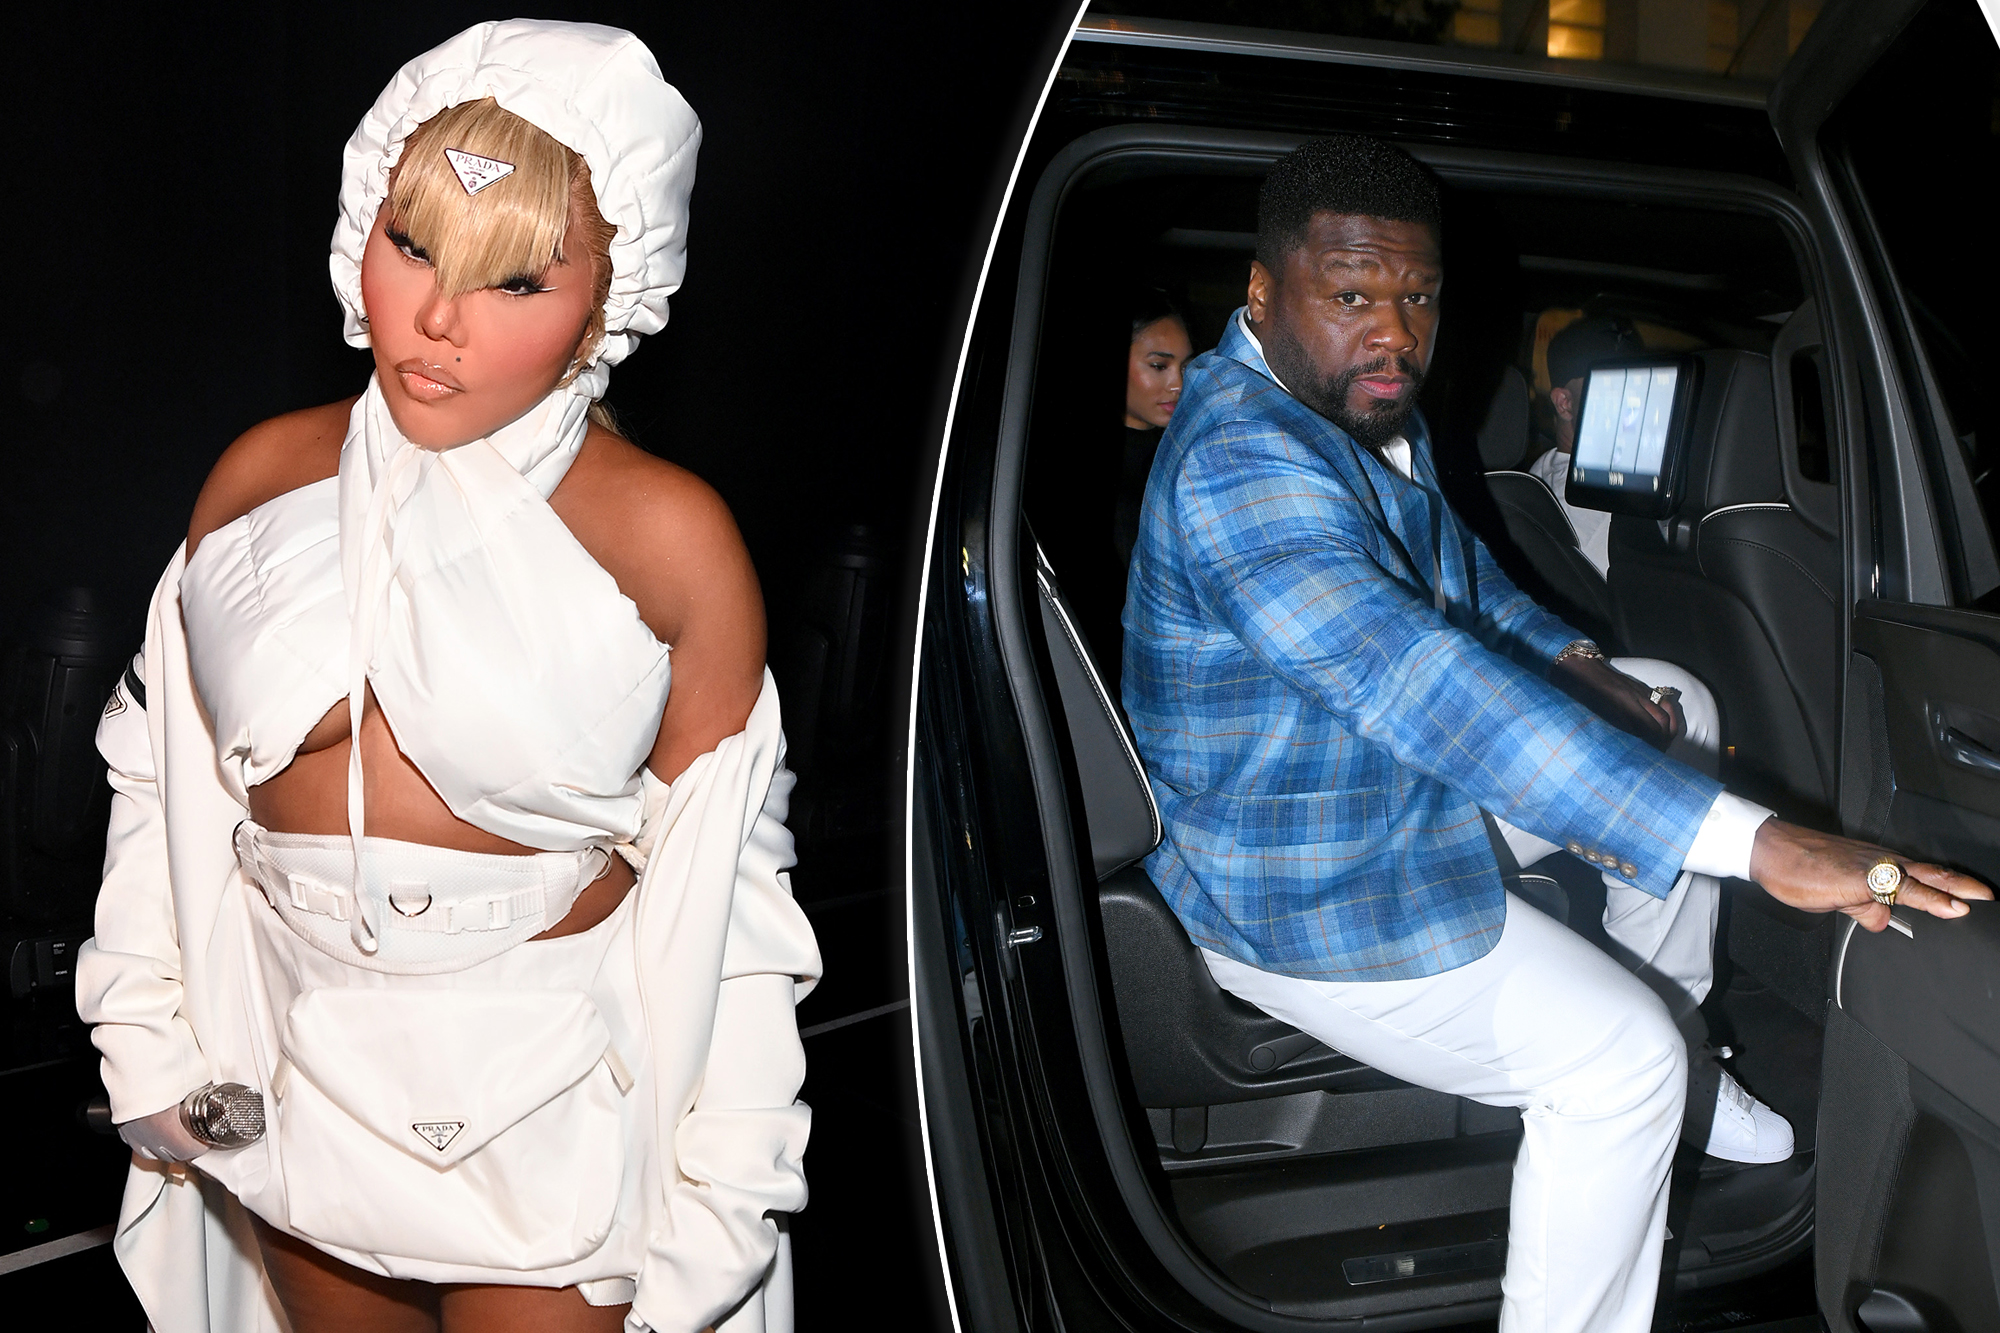 Lil Kim Claps Back At 50 Cent After He Compares Her To A Leprechaun